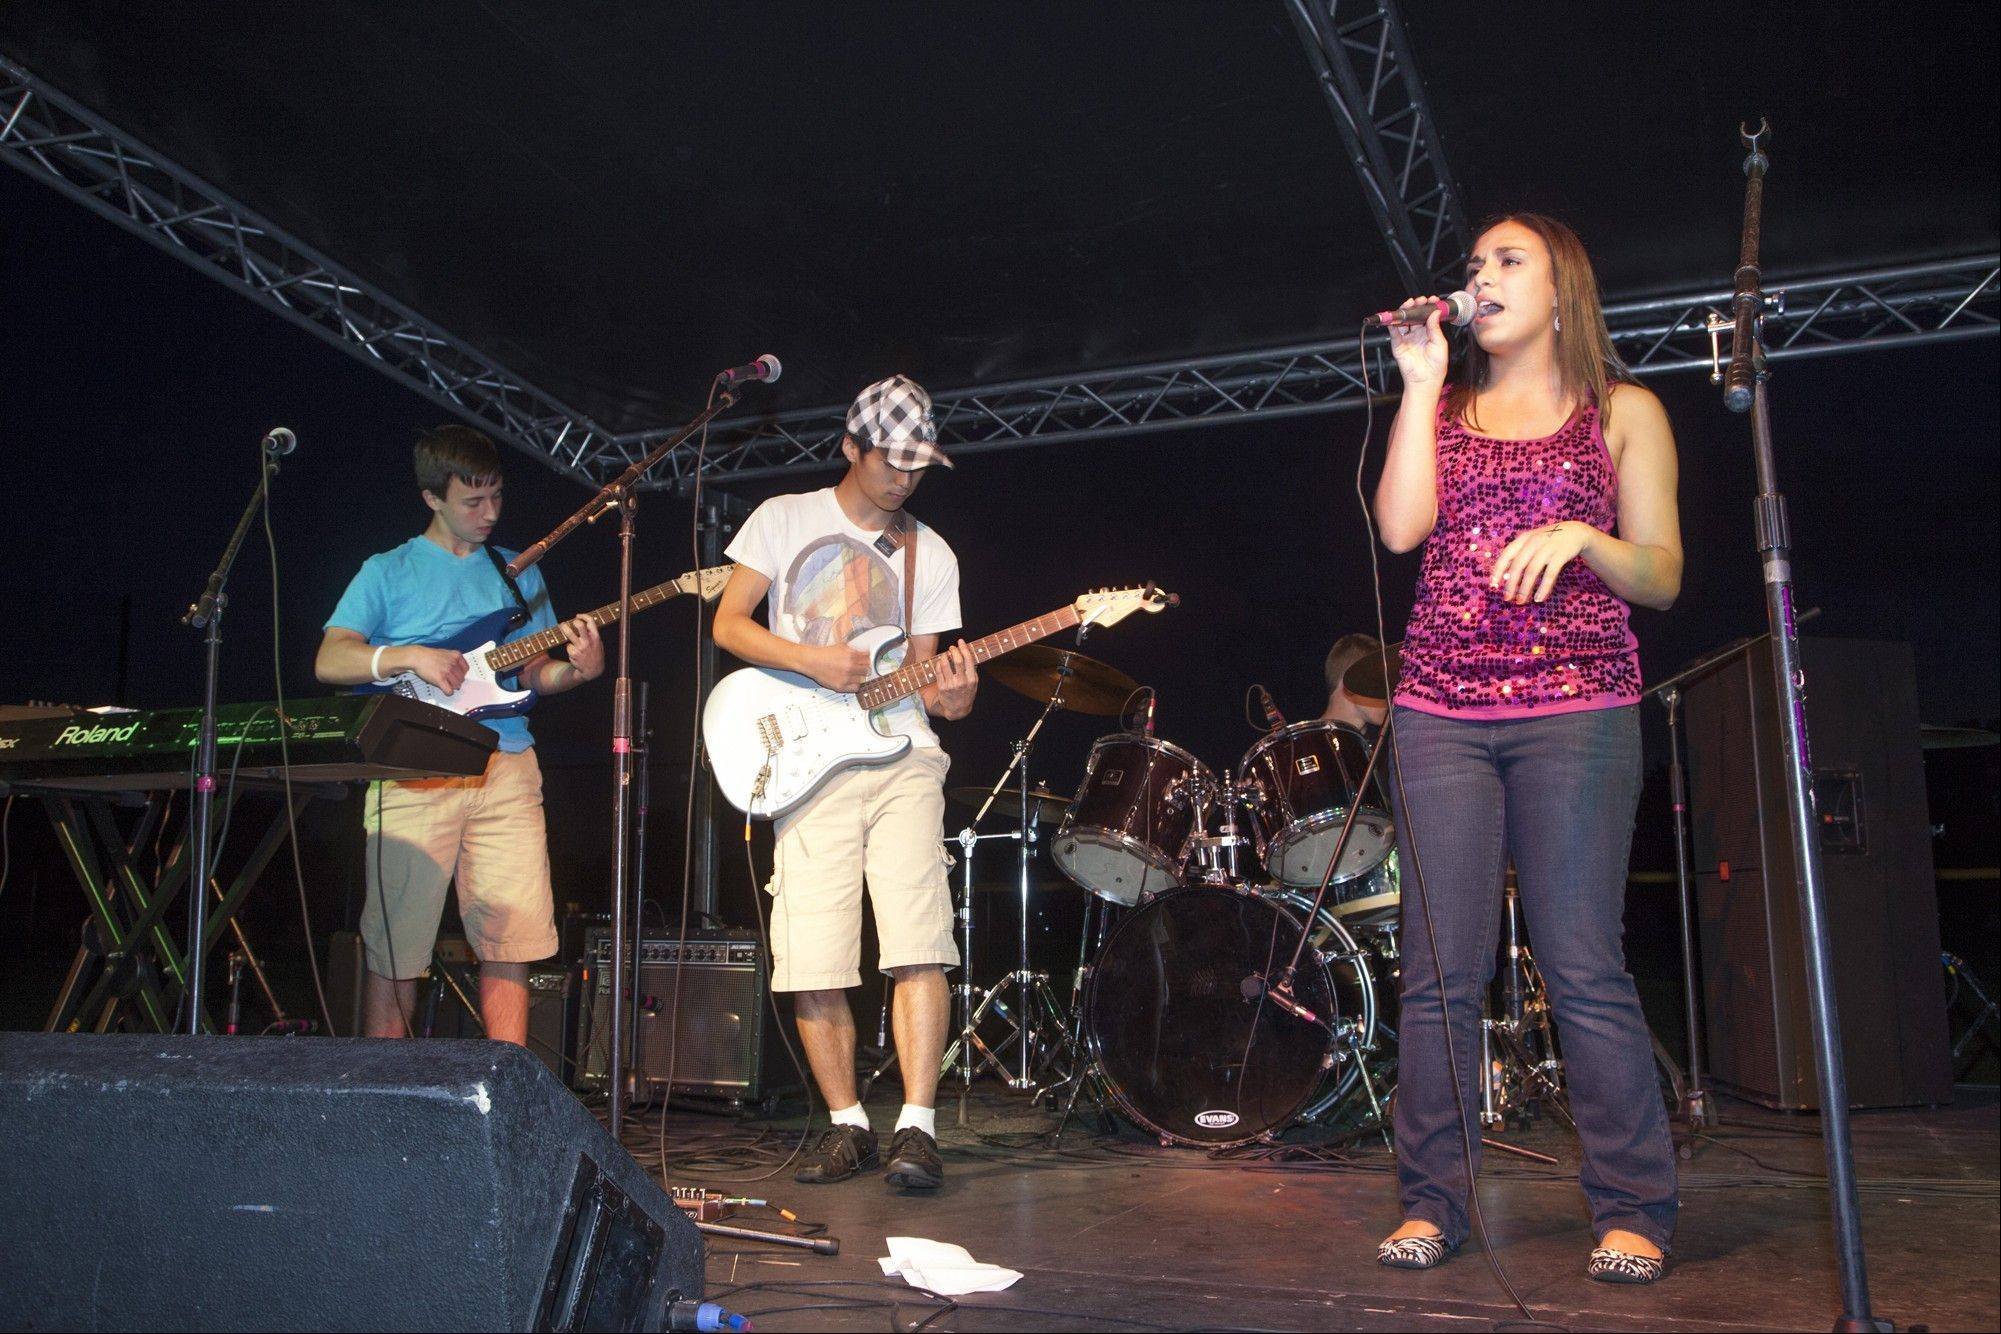 Sara Fecko, right, sings lead vocals with bandmates Bobby Gallant, left, and Yoon Chang.